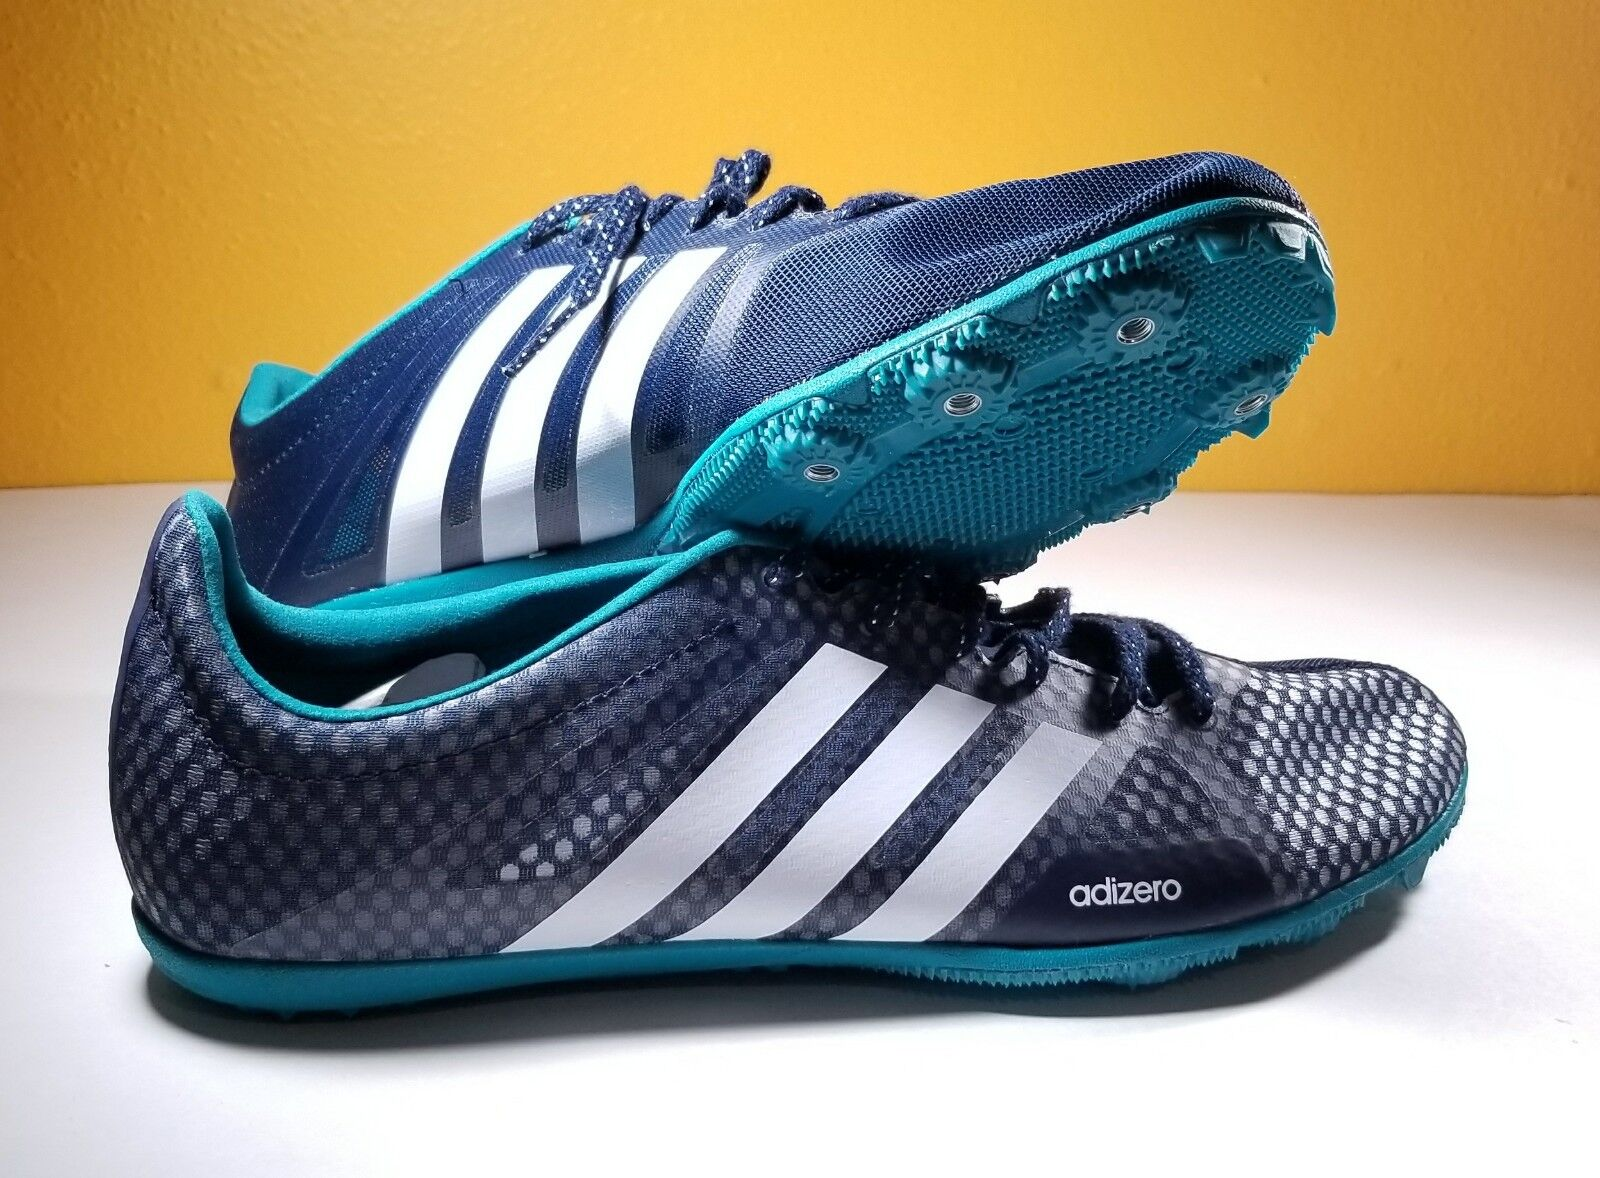 Adidas AdiZero Ambition MD 2 Mens Middle Distance Track Spikes Shoes Sz 11 Price reduction Casual wild